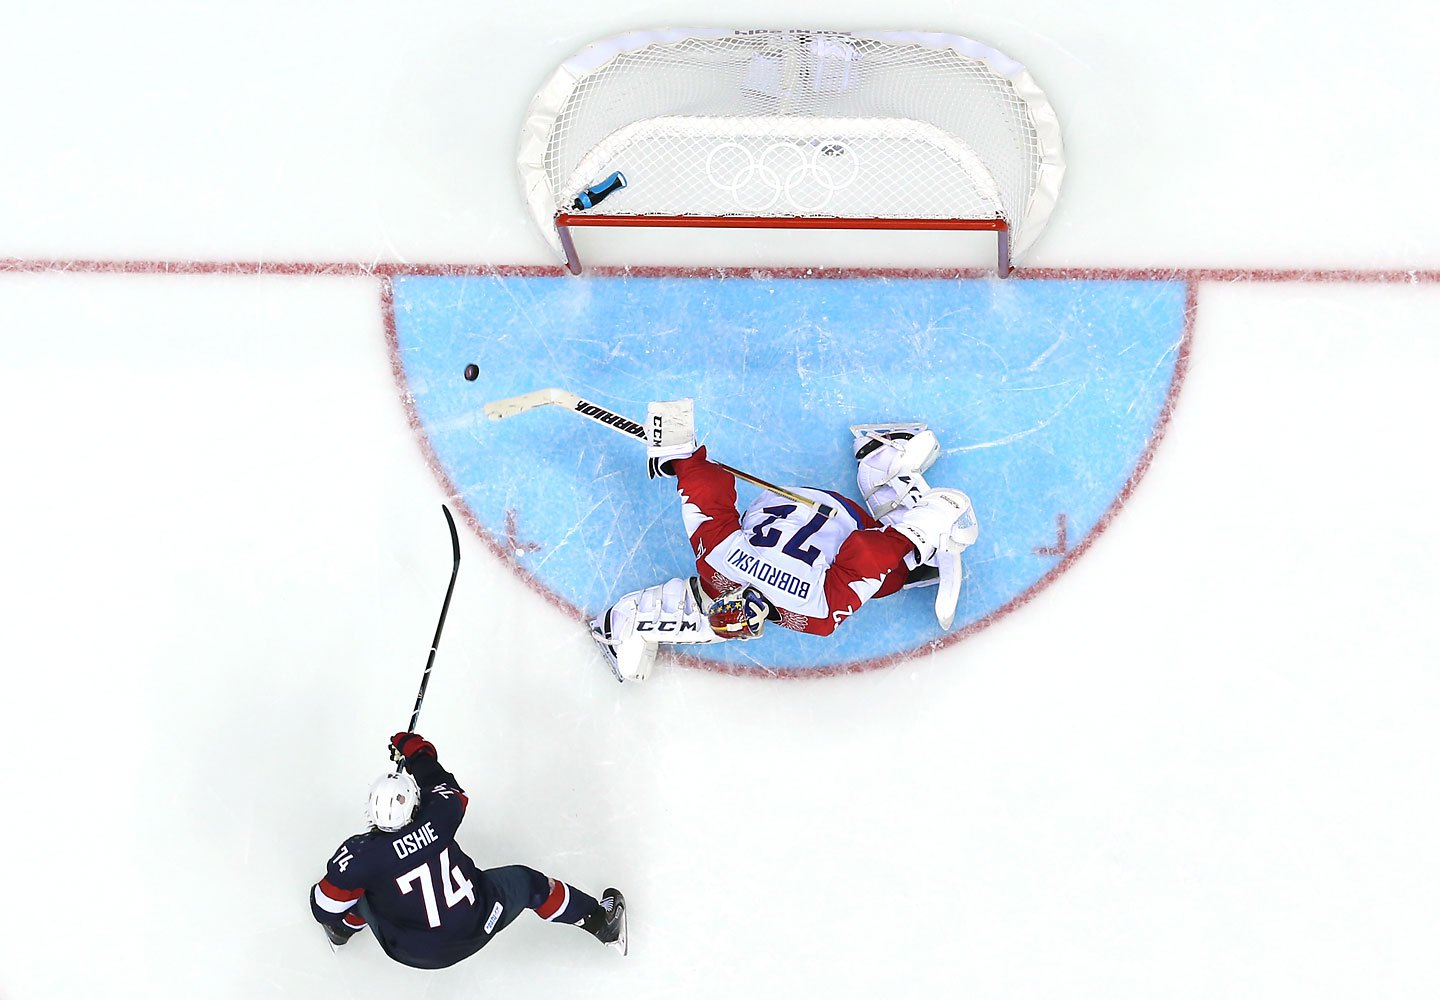 .J. Oshie #74 of the United States shoots during a shootout against Sergei Bobrovski #72 of Russia .